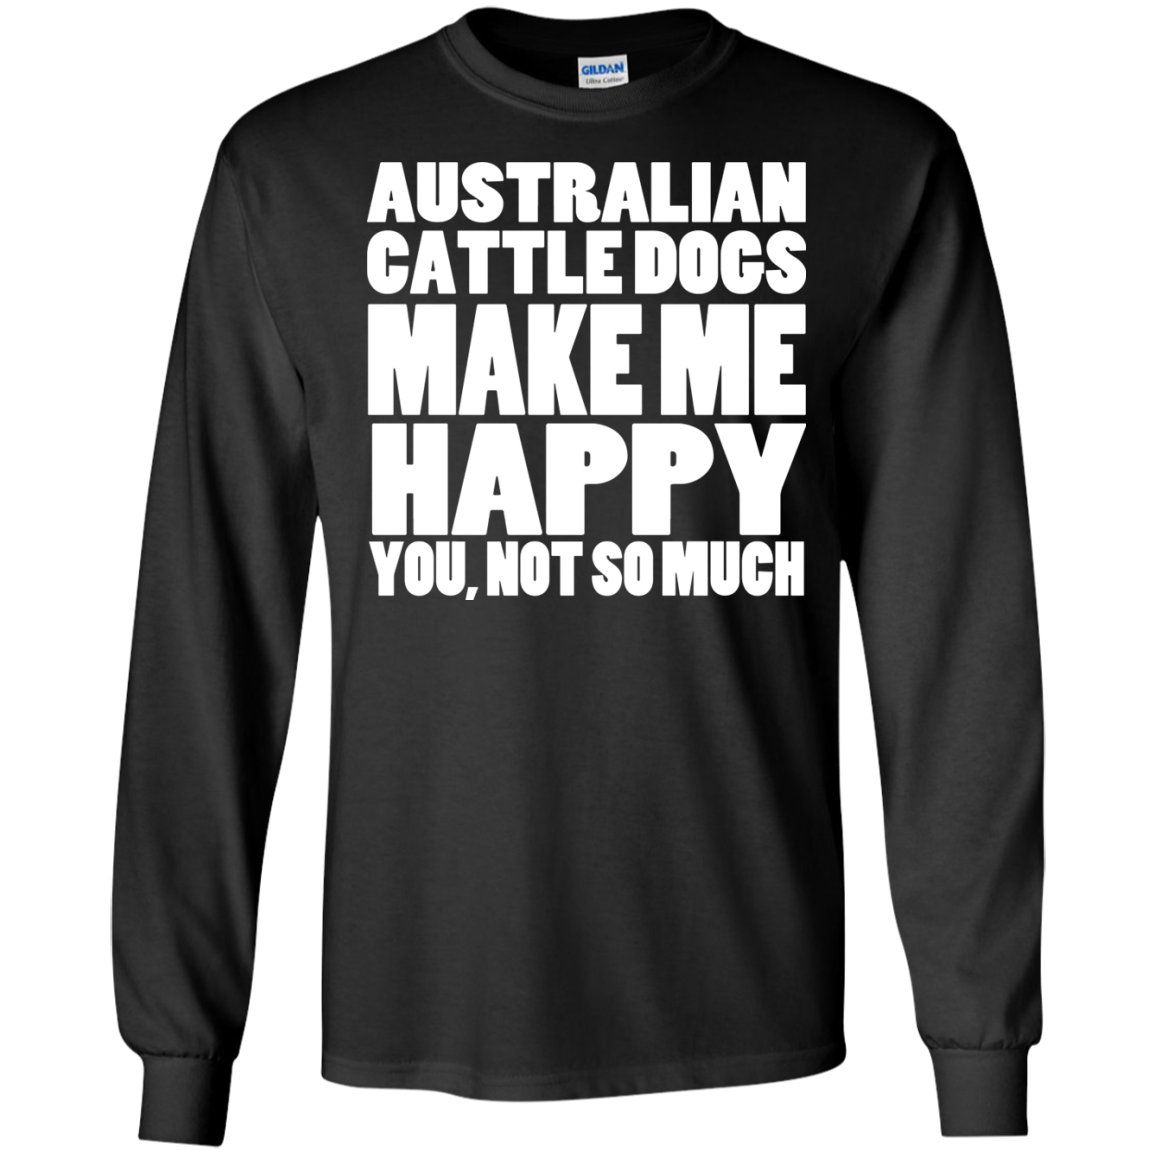 Australian Cattle Dogs Make Me Happy You Not So Much Long Sleeve Tees